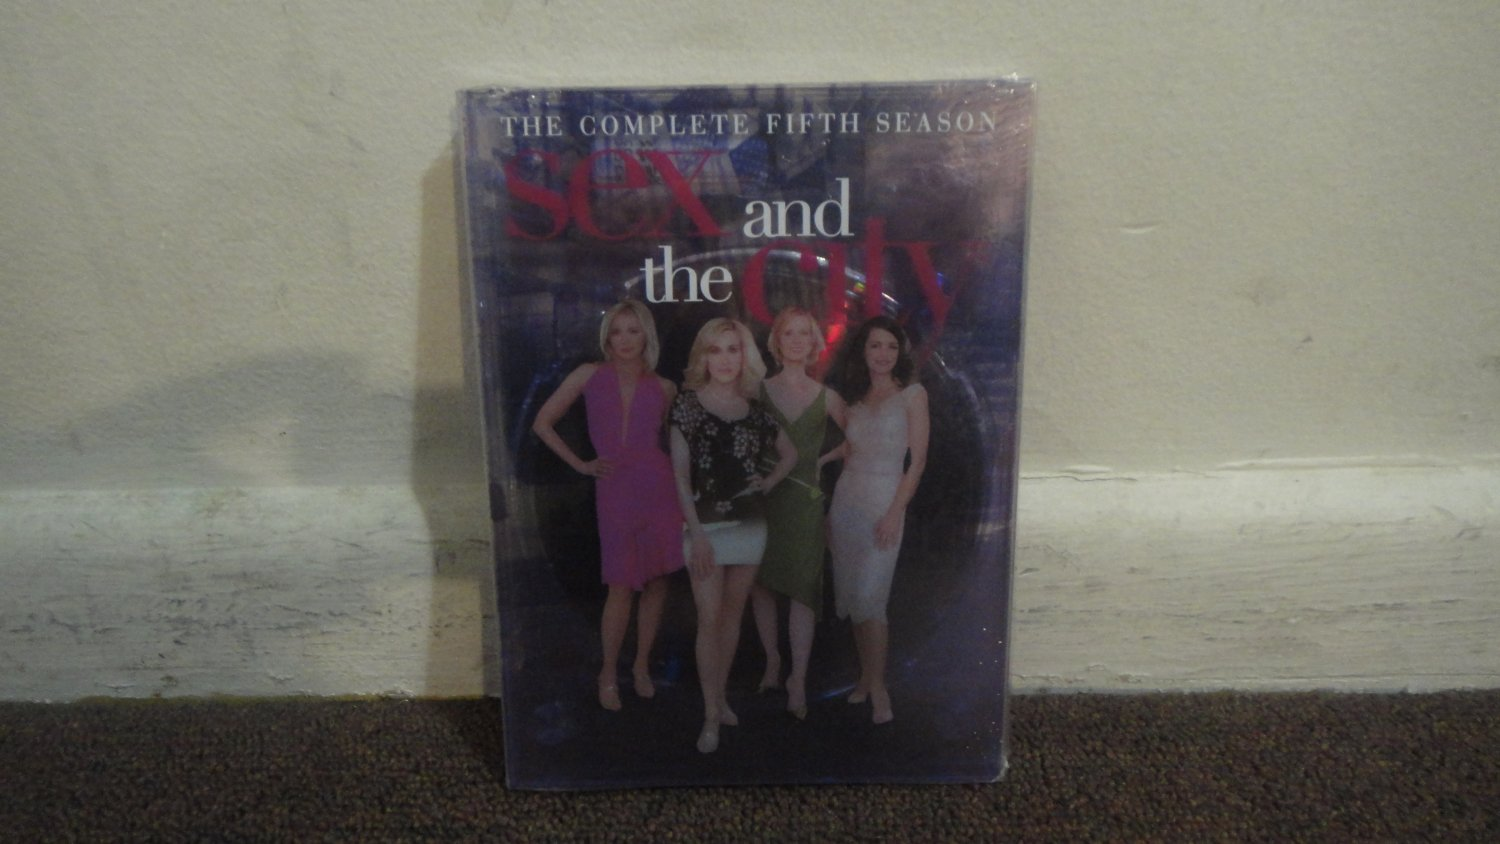 SEX and The CITY - DVD SET: The Complete Fifth Season, Season 5, Brand New, Sealed. LOOK!!!